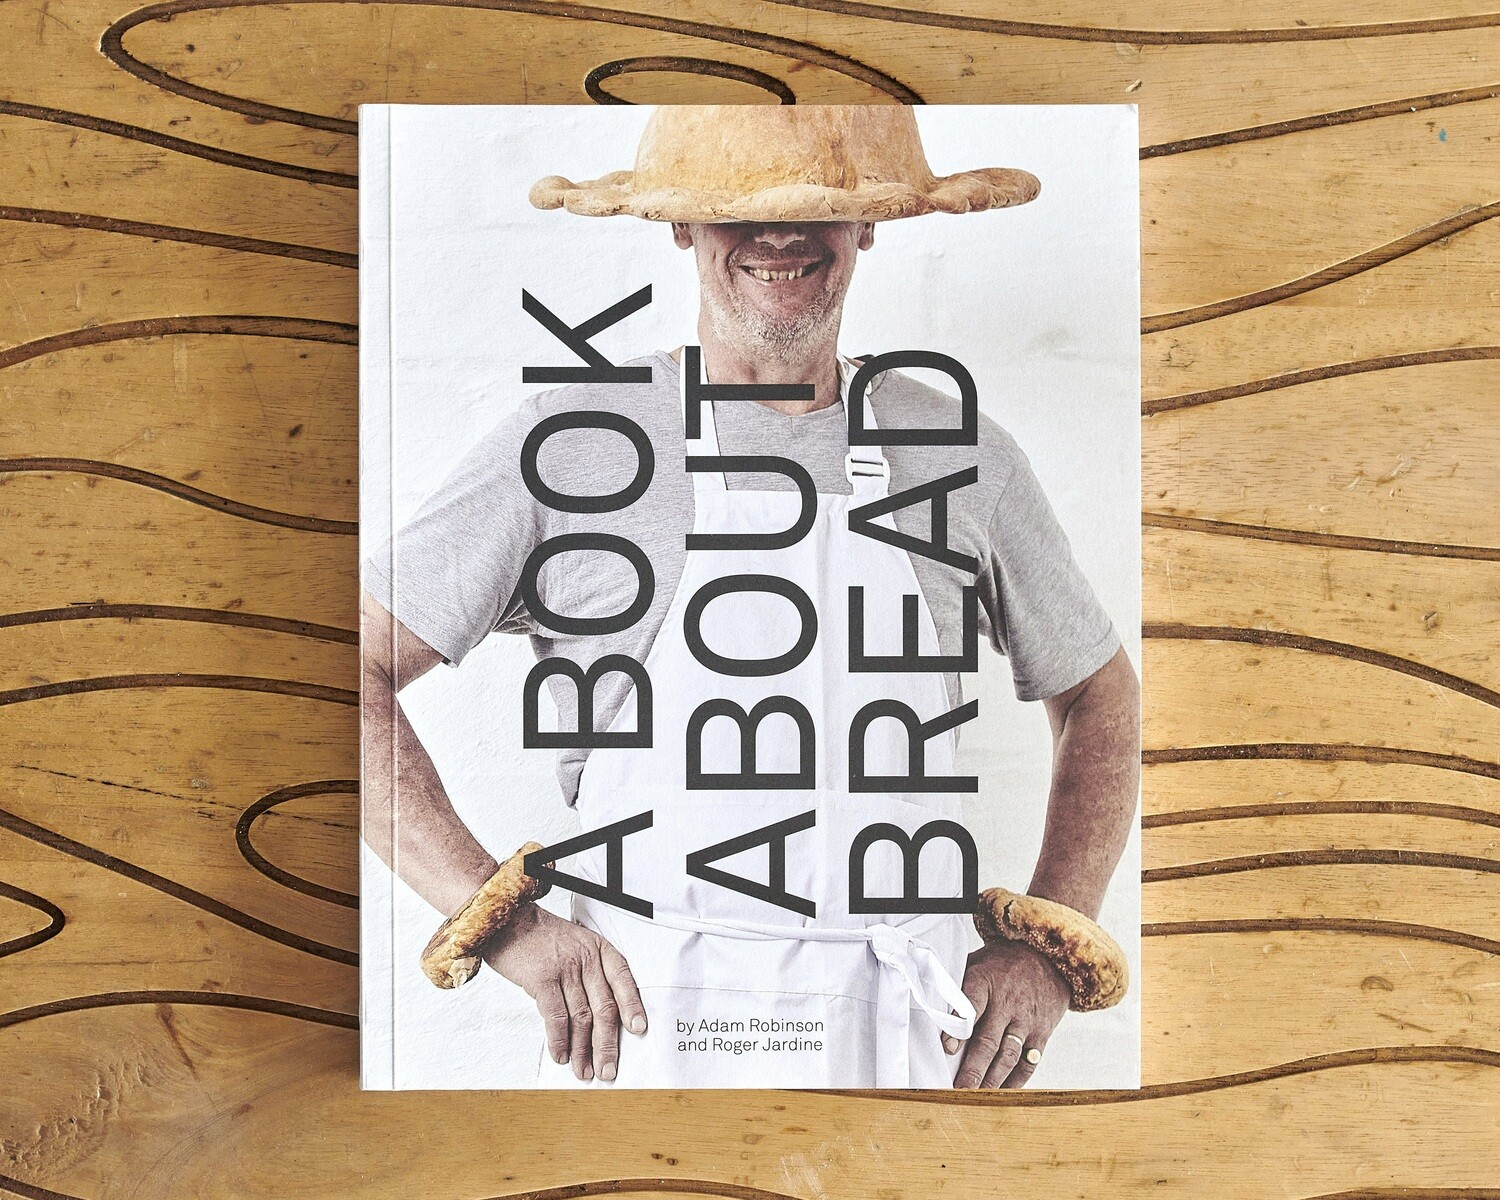 A BOOK ABOUT BREAD